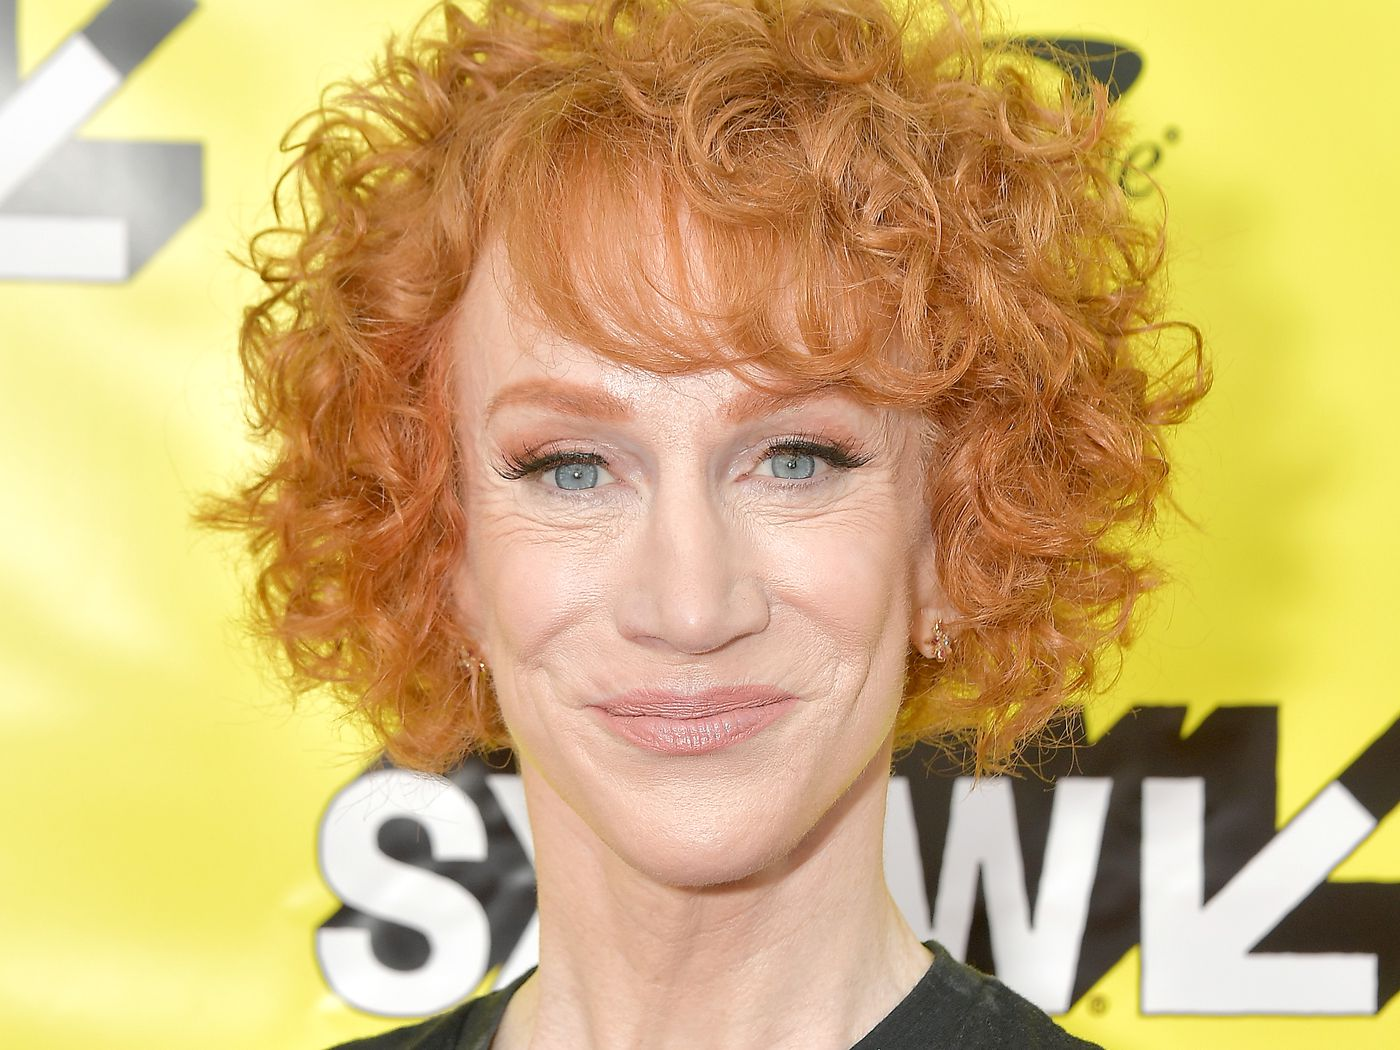 Kathy Griffin Talks About Beheaded Trump Photo Twitter Ceo Jack Dorsey And Facebook Ceo Mark Zuckerberg With Recode S Kara Swisher Vox